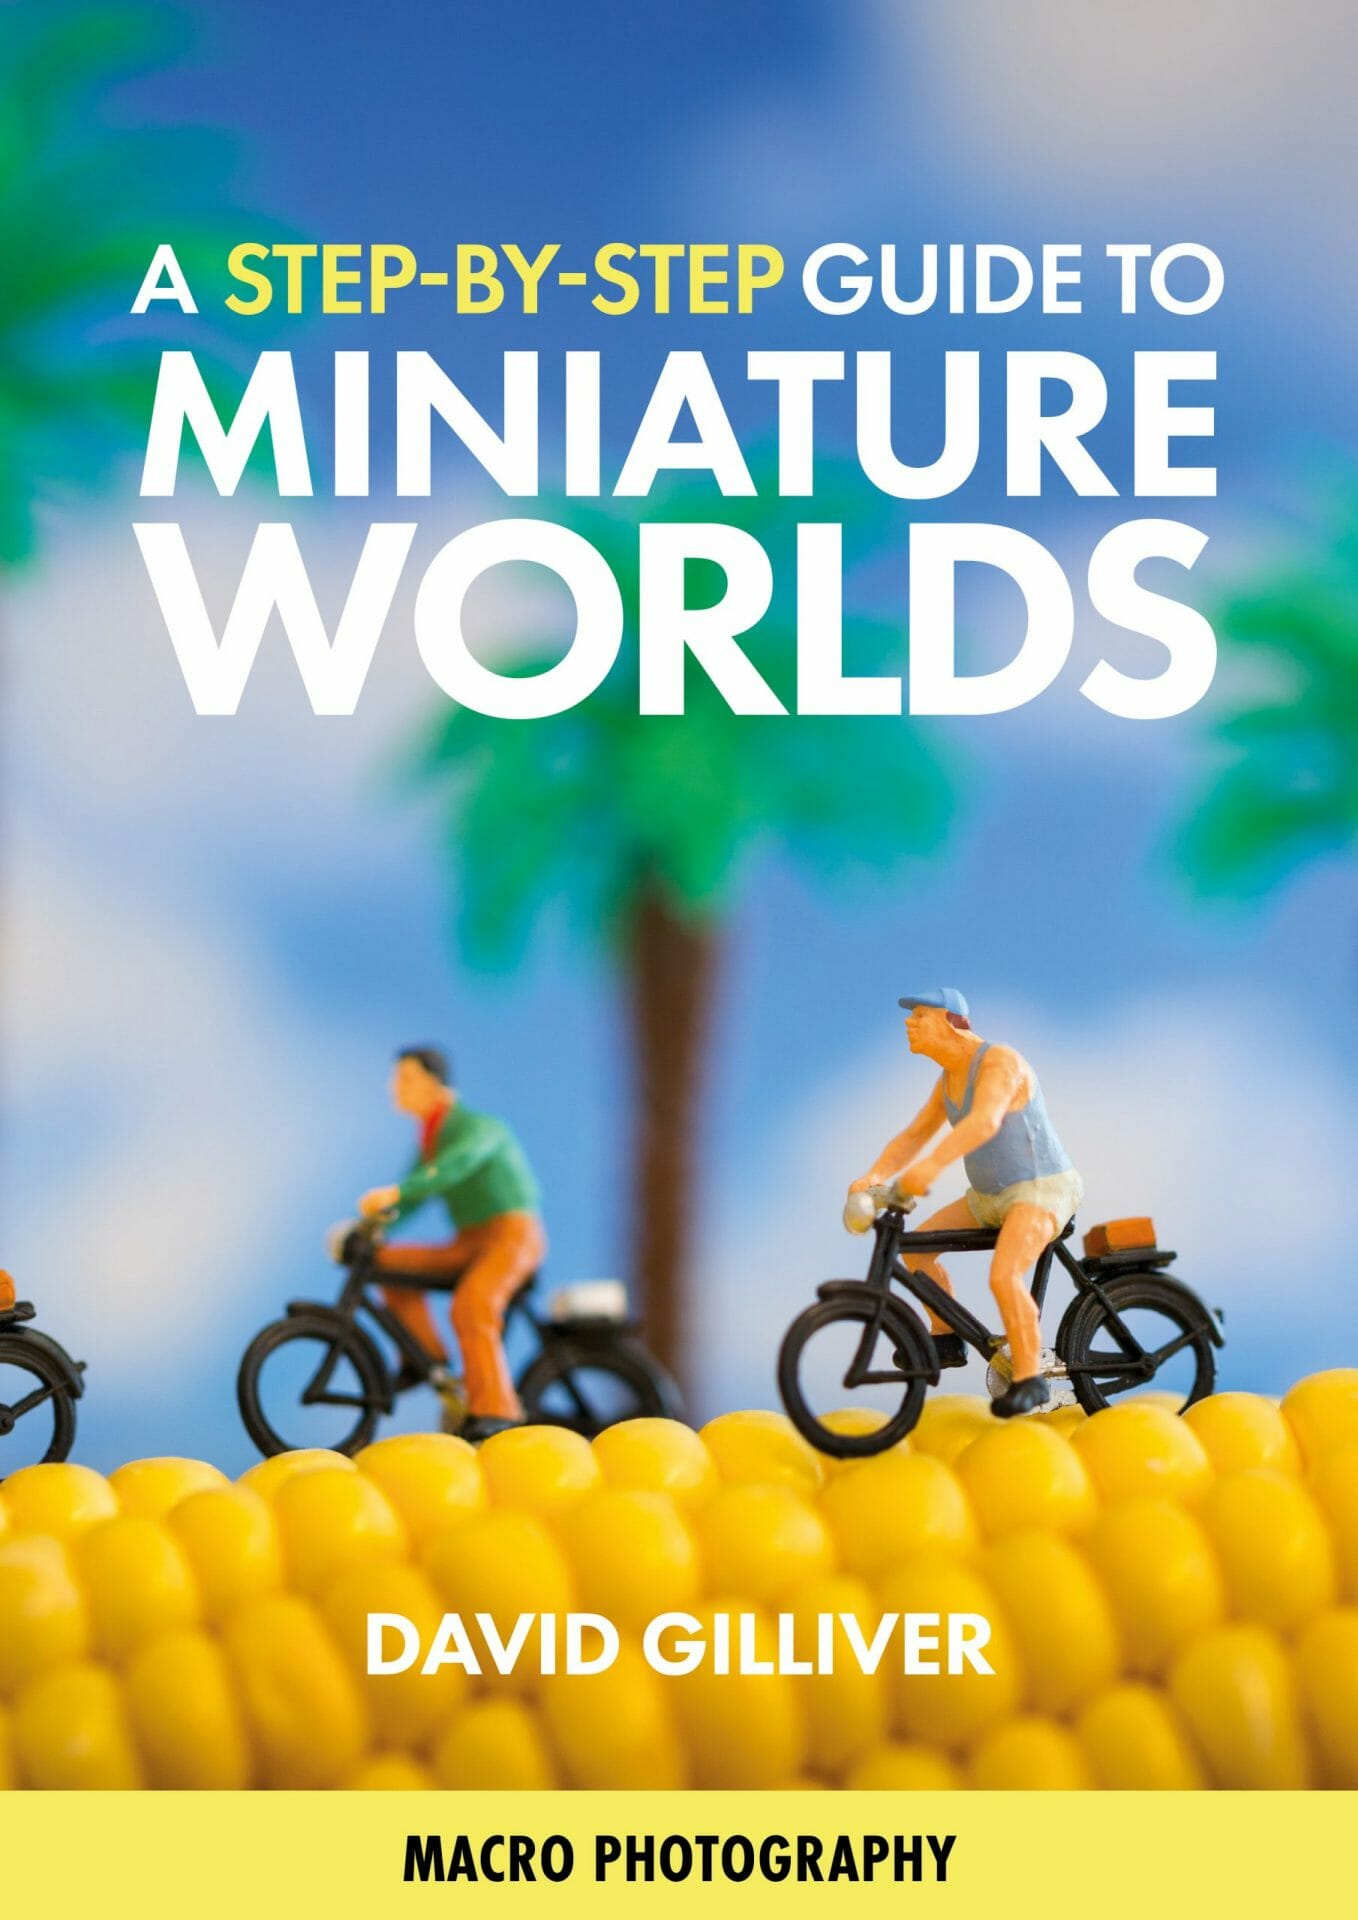 A Step-by-Step Guide to Miniature Worlds